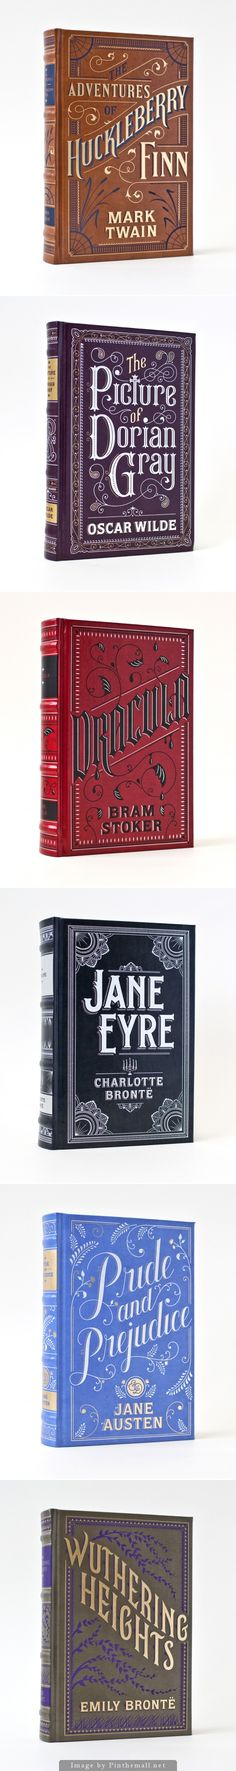 Jessica Hische book cover design